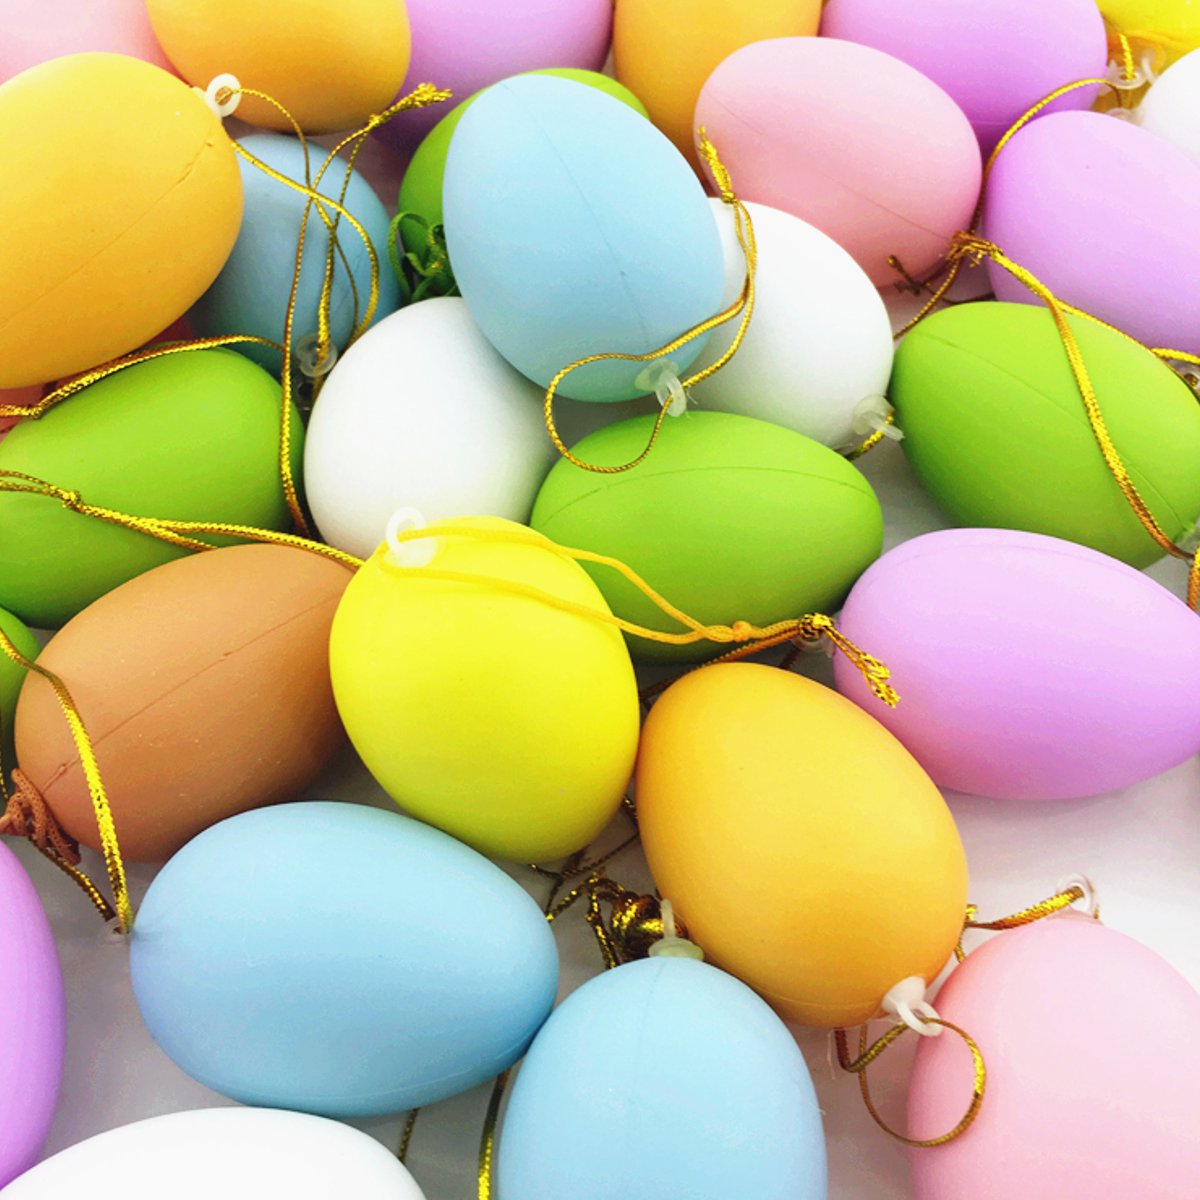 Wholesale easter gifts best oval easter basket with wholesale simple pcs bright colors plastic easter eggs simulation easter events party diy decorative gadgets assortment toy gifts ornamentin party diy decorations negle Gallery